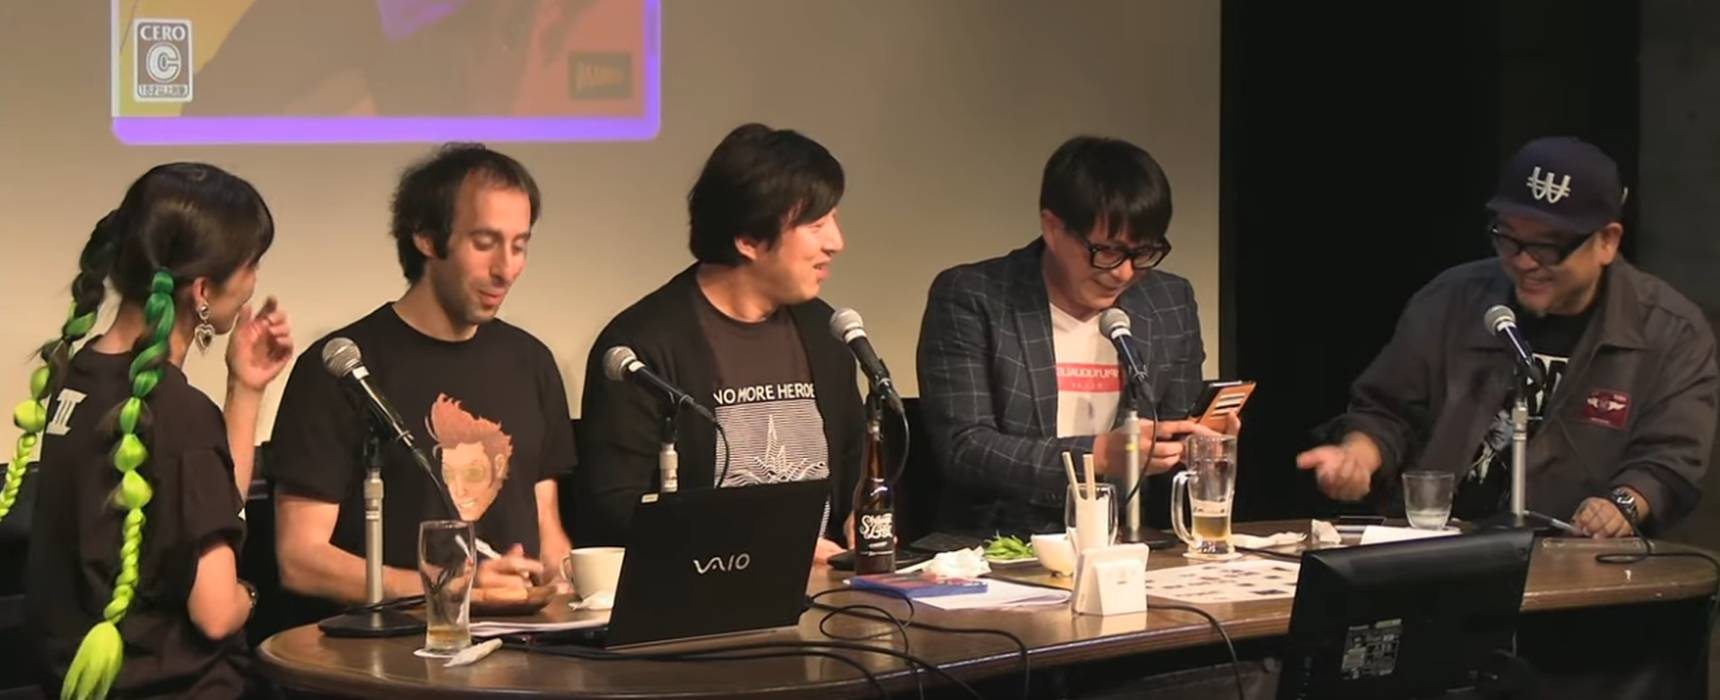 Developers Suda51 and Swery65 Announce Plans Team-Up To Create Horror Game